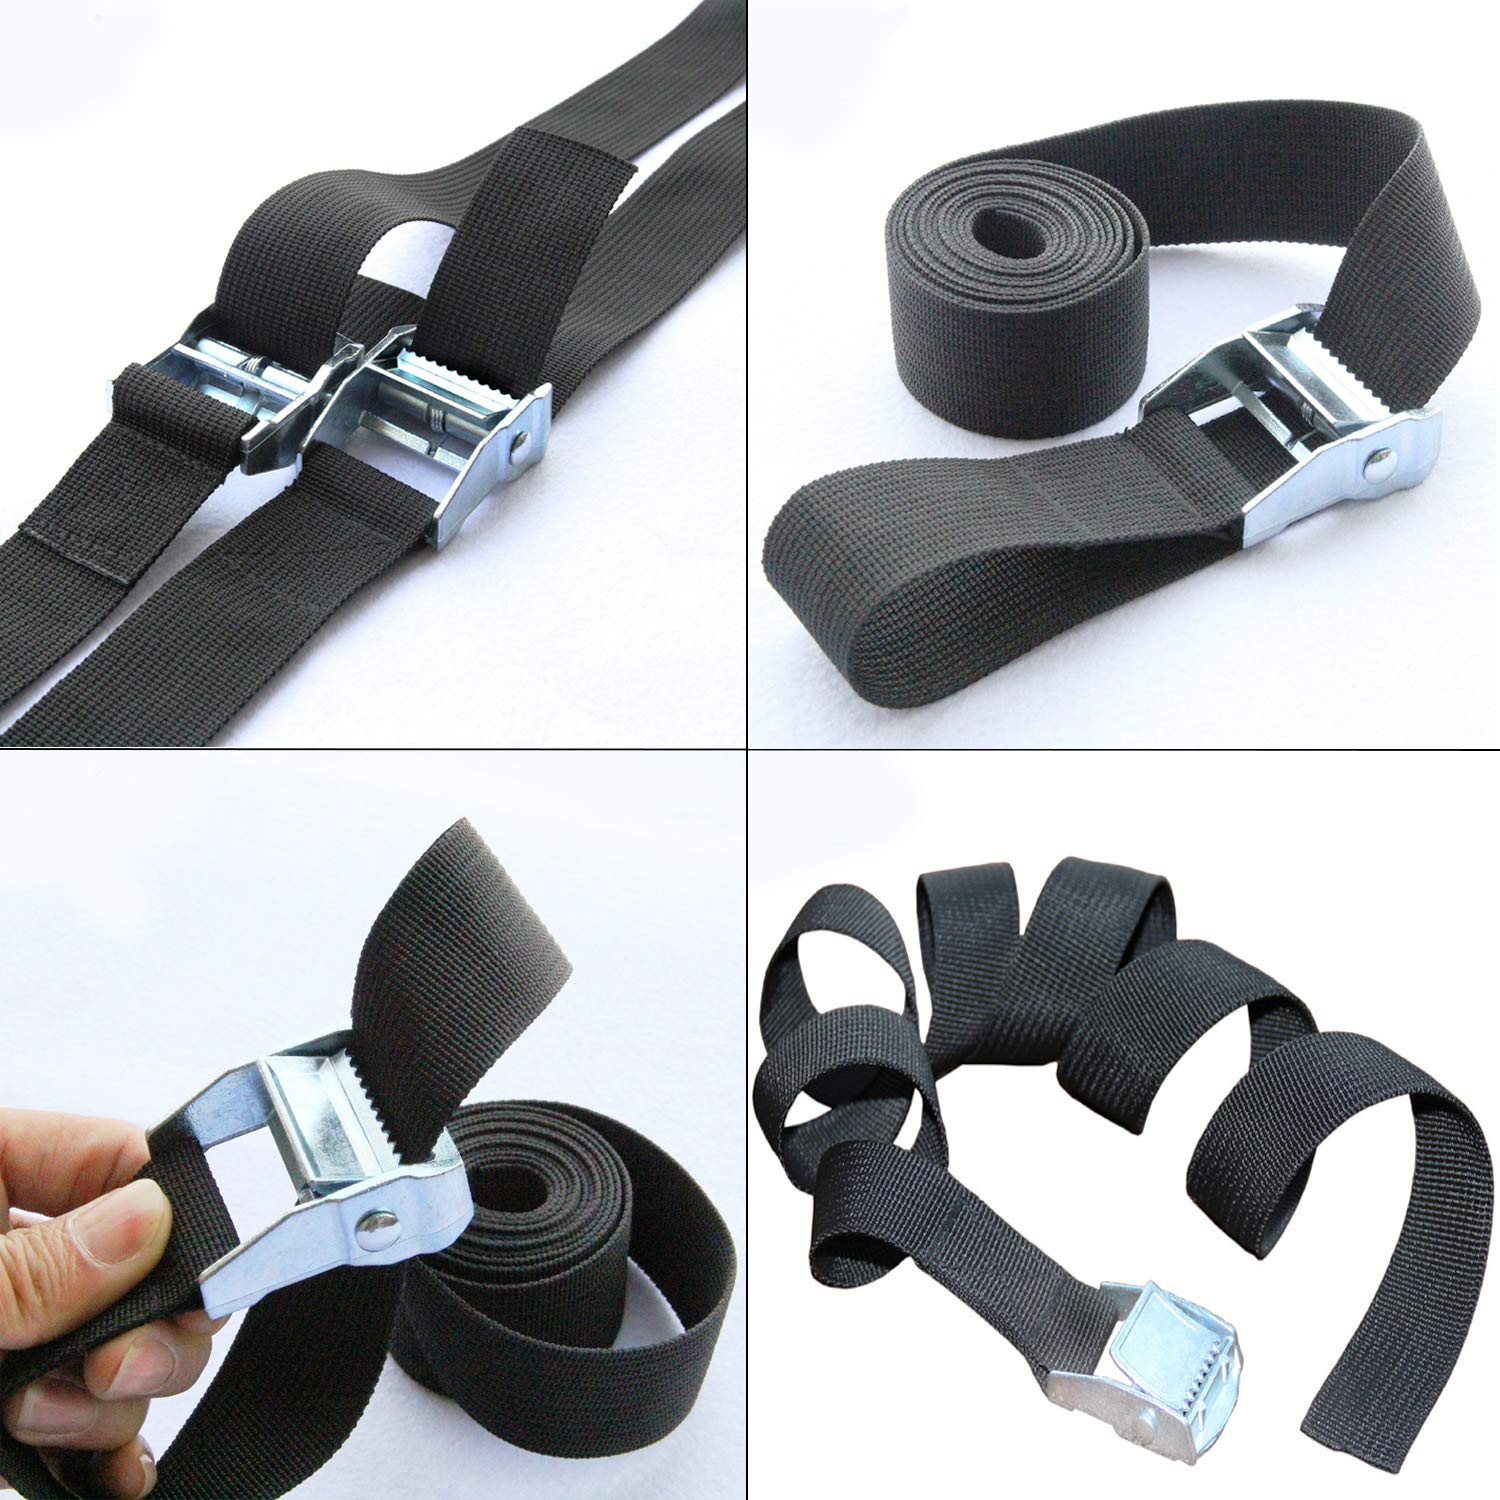 IronBuddy 10 x 1 Tie Down Straps Lashing Straps Black Nylon Heavy Dust Cargo Tie Down Straps with Zinc Alloy Lock Buckle Up to 600lbs 10ft Pack of 4